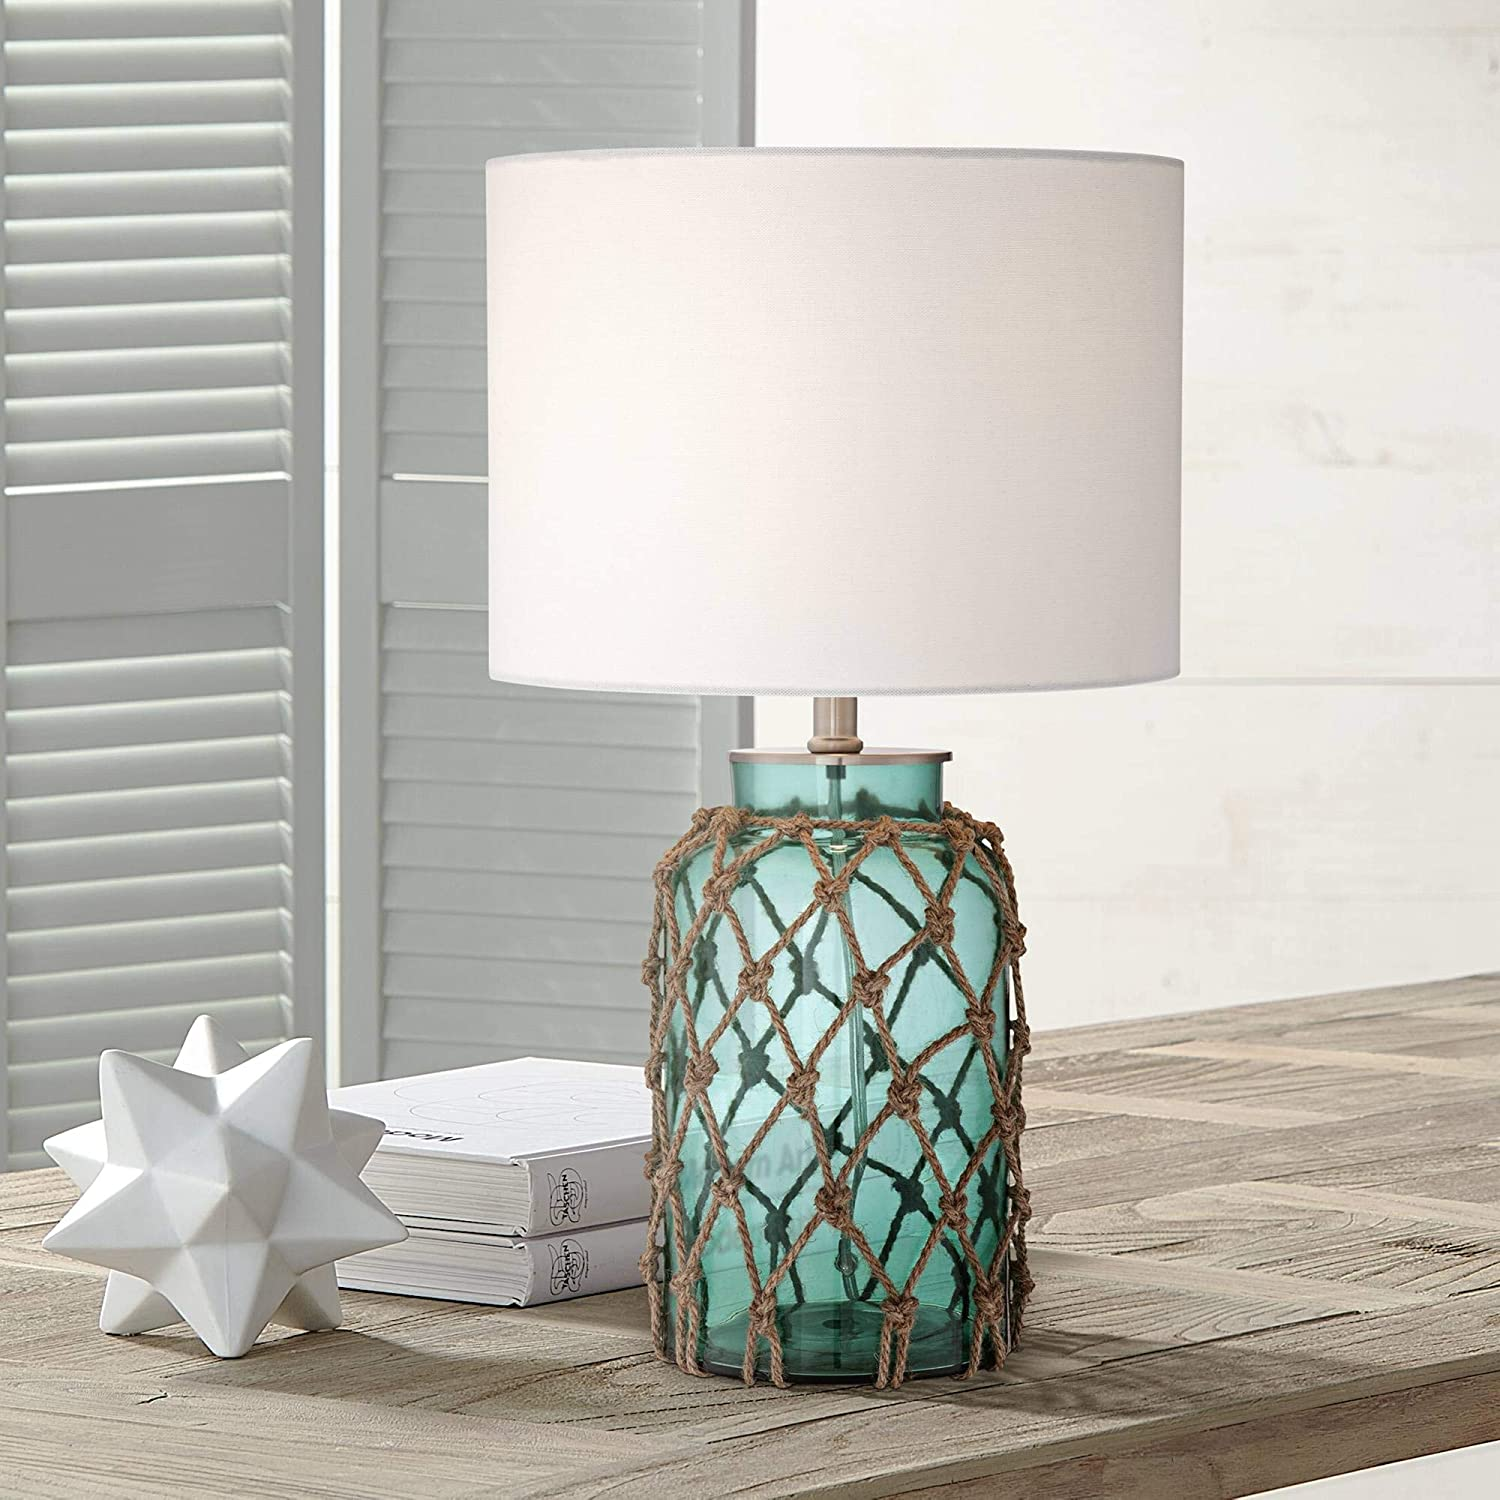 Crosby Nautical Accent Table Lamp Coastal Blue Green Glass Rope Net Off White Drum Shade for Living Room Family Bedroom